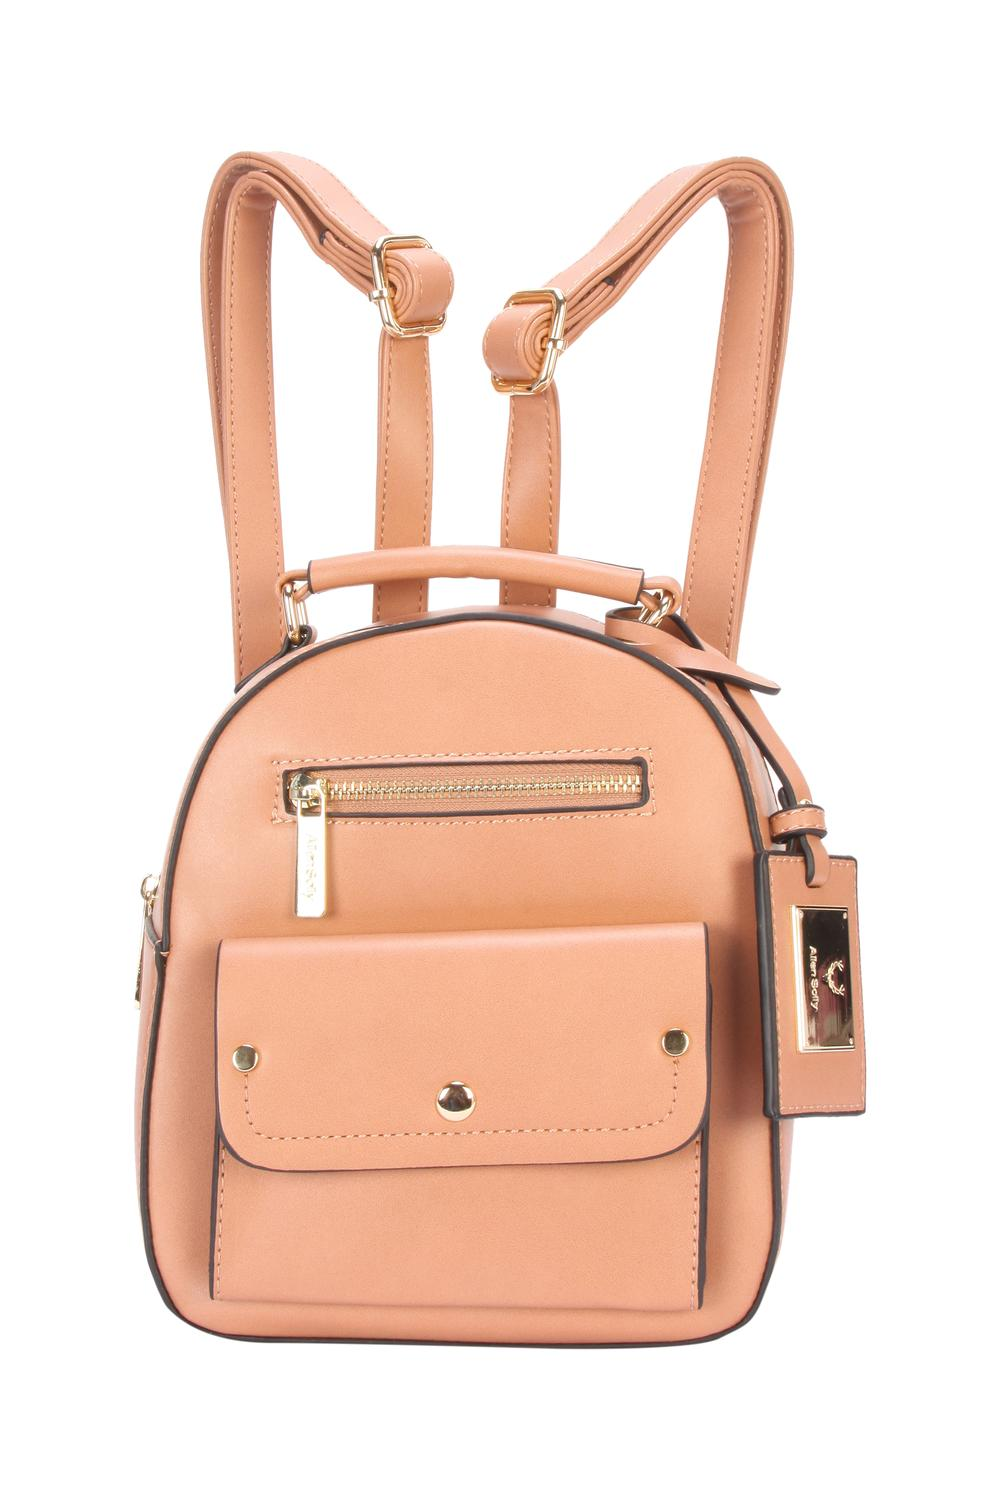 637725e2df Solly Fashion Accessories, Allen Solly Beige Backpack for Women at  Allensolly.com